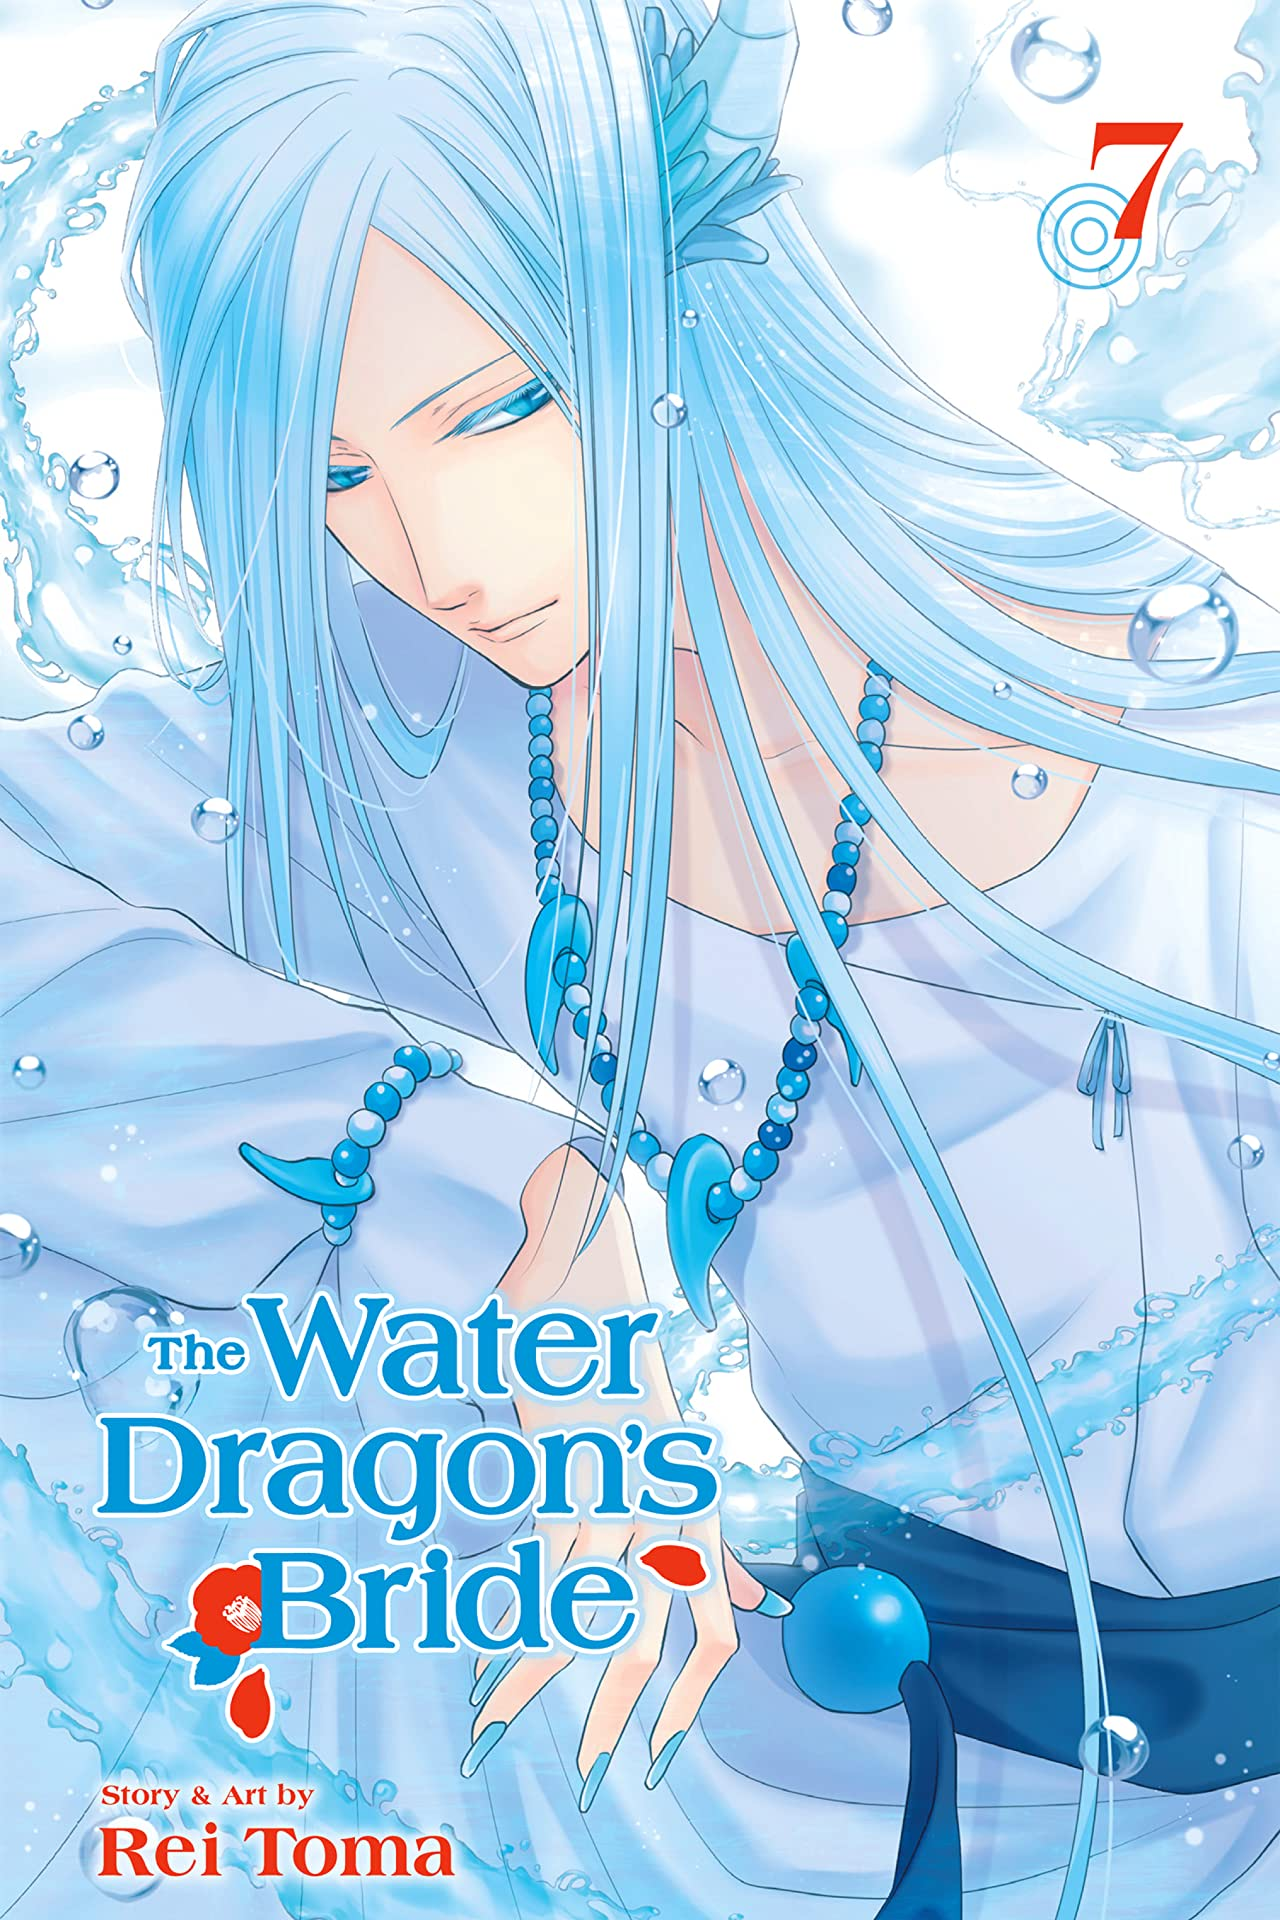 The Water Dragon's Bride Vol. 7